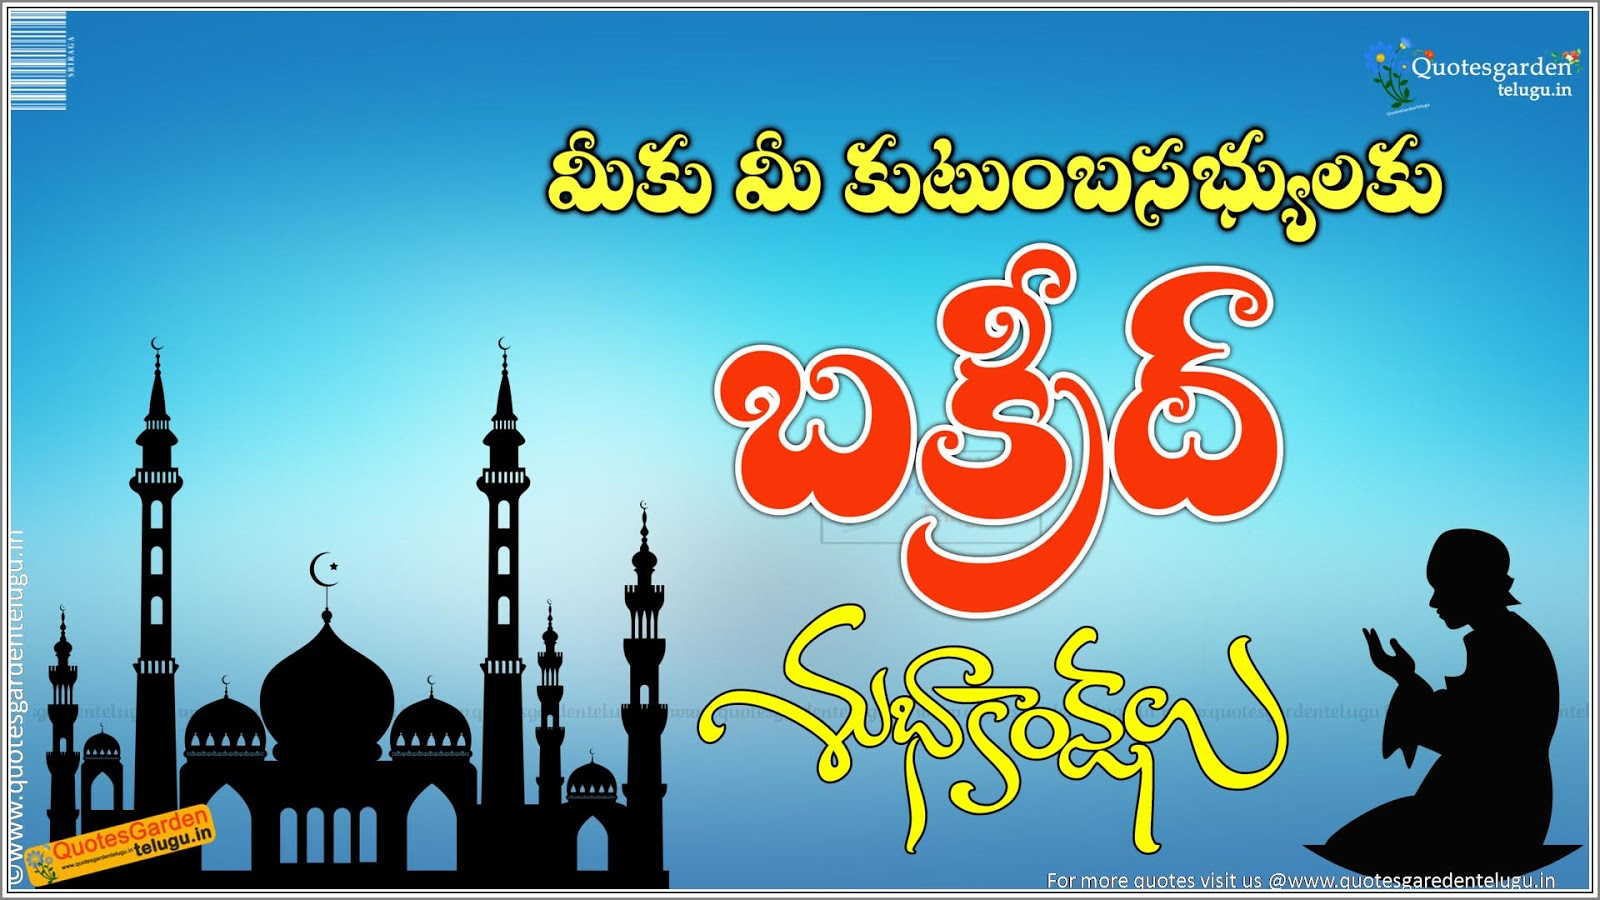 Telugu Quotes Wallpapers Bakrid 2016 Telugu Greetings Wishes Quotes Quotes Garden